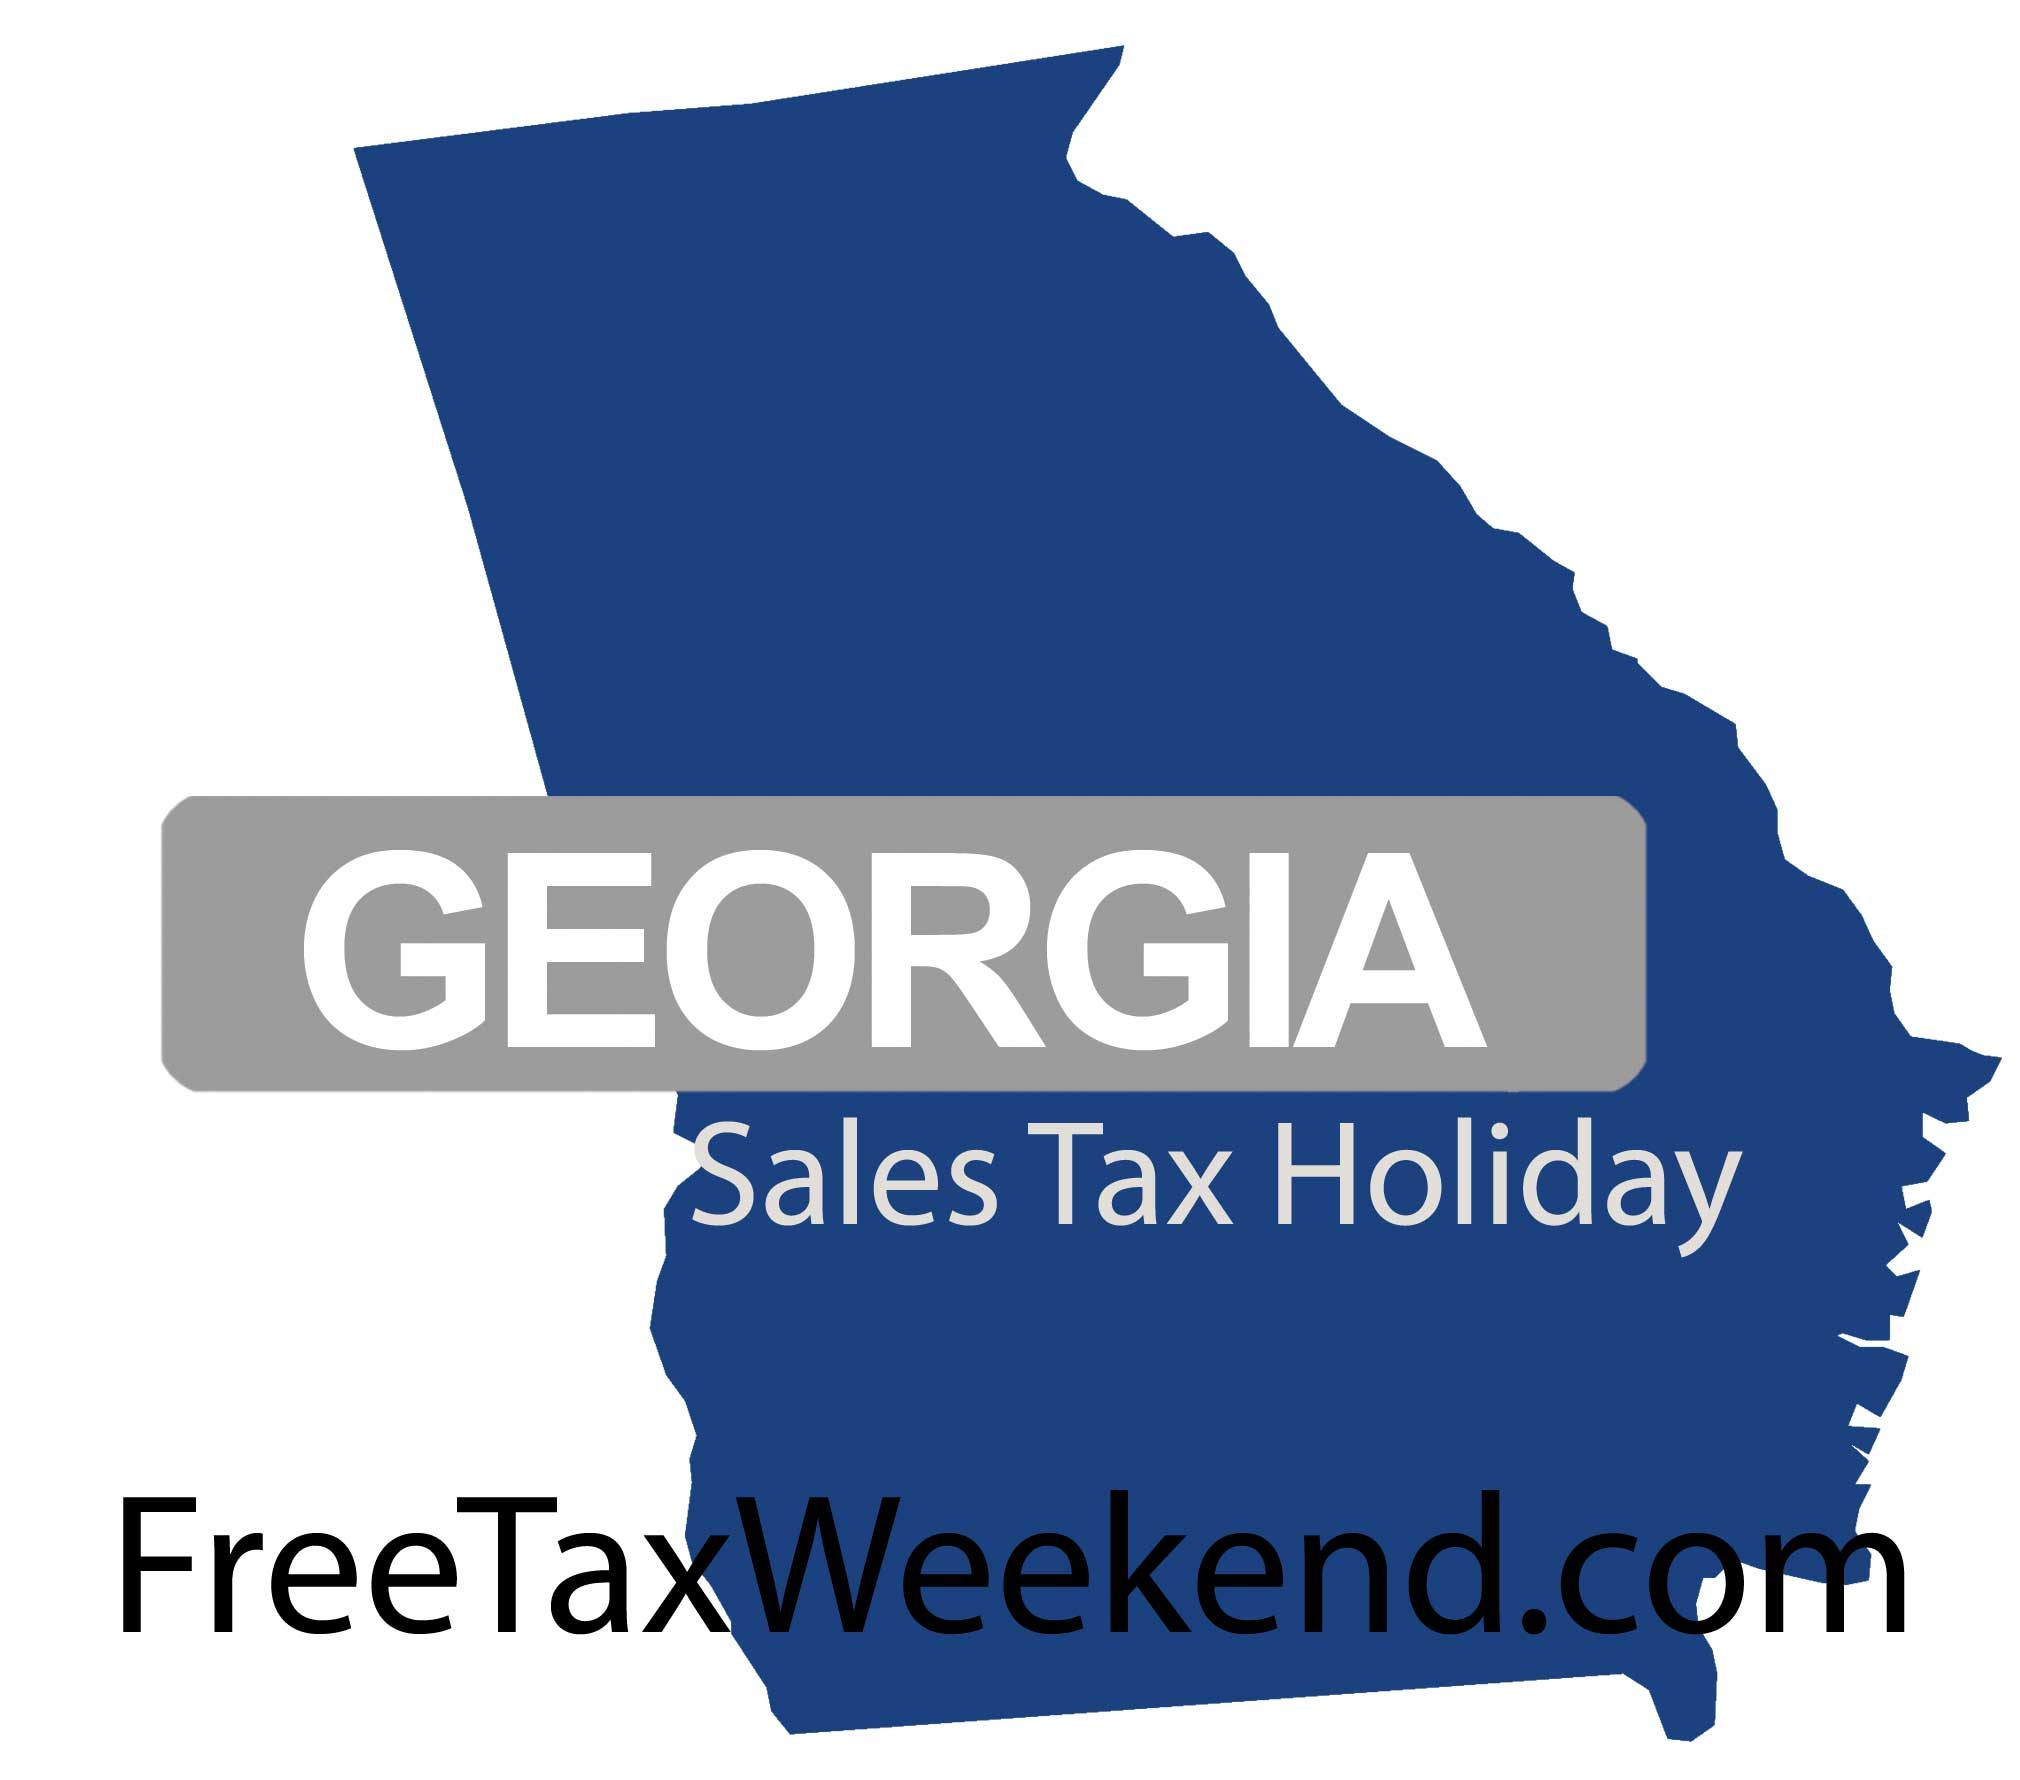 Georgia Sales Tax Holiday 2016 Energy Star and WaterSense